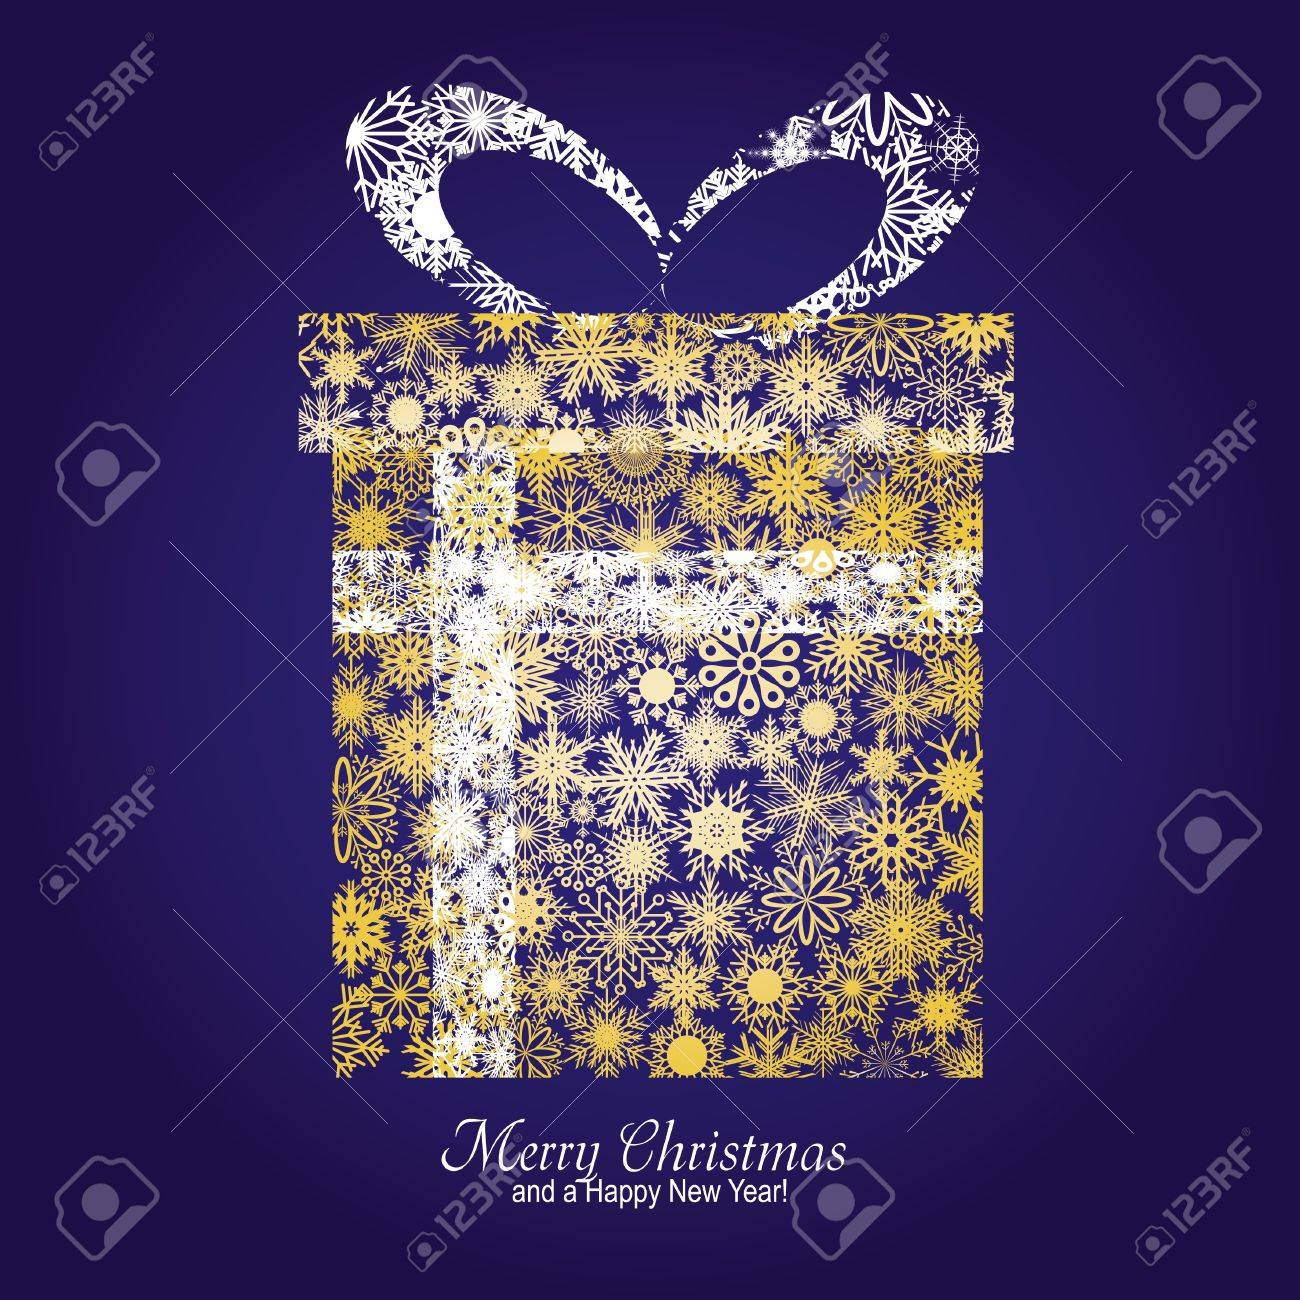 Christmas card with gift box made from gold snowflakes on blue background and a wish of Merry Christmas and a Happy New Year,   illustration Stock Vector - 8313323